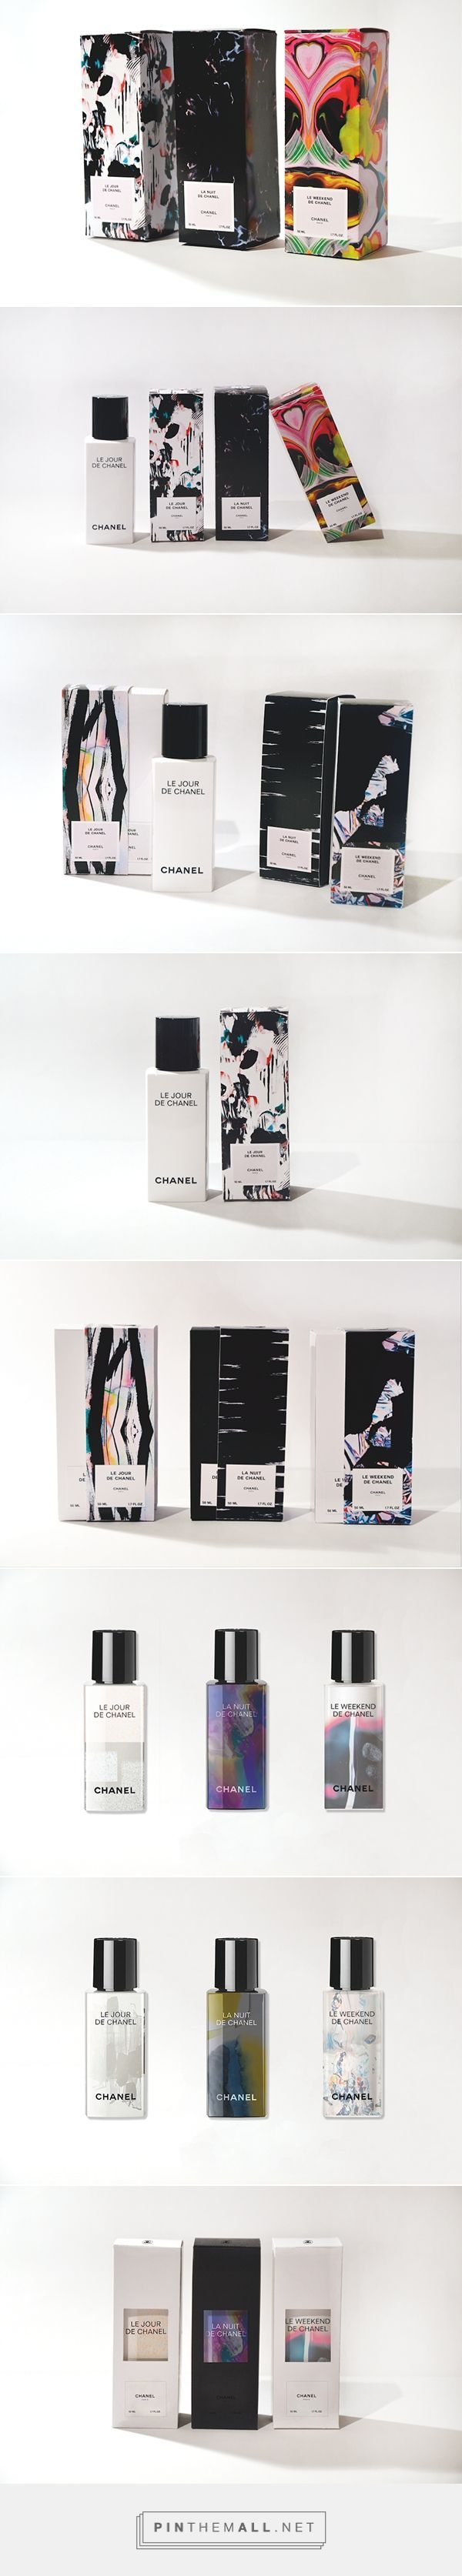 Love this packaging. The abstract designs combined with the minimalist type make it look very modern and on trend